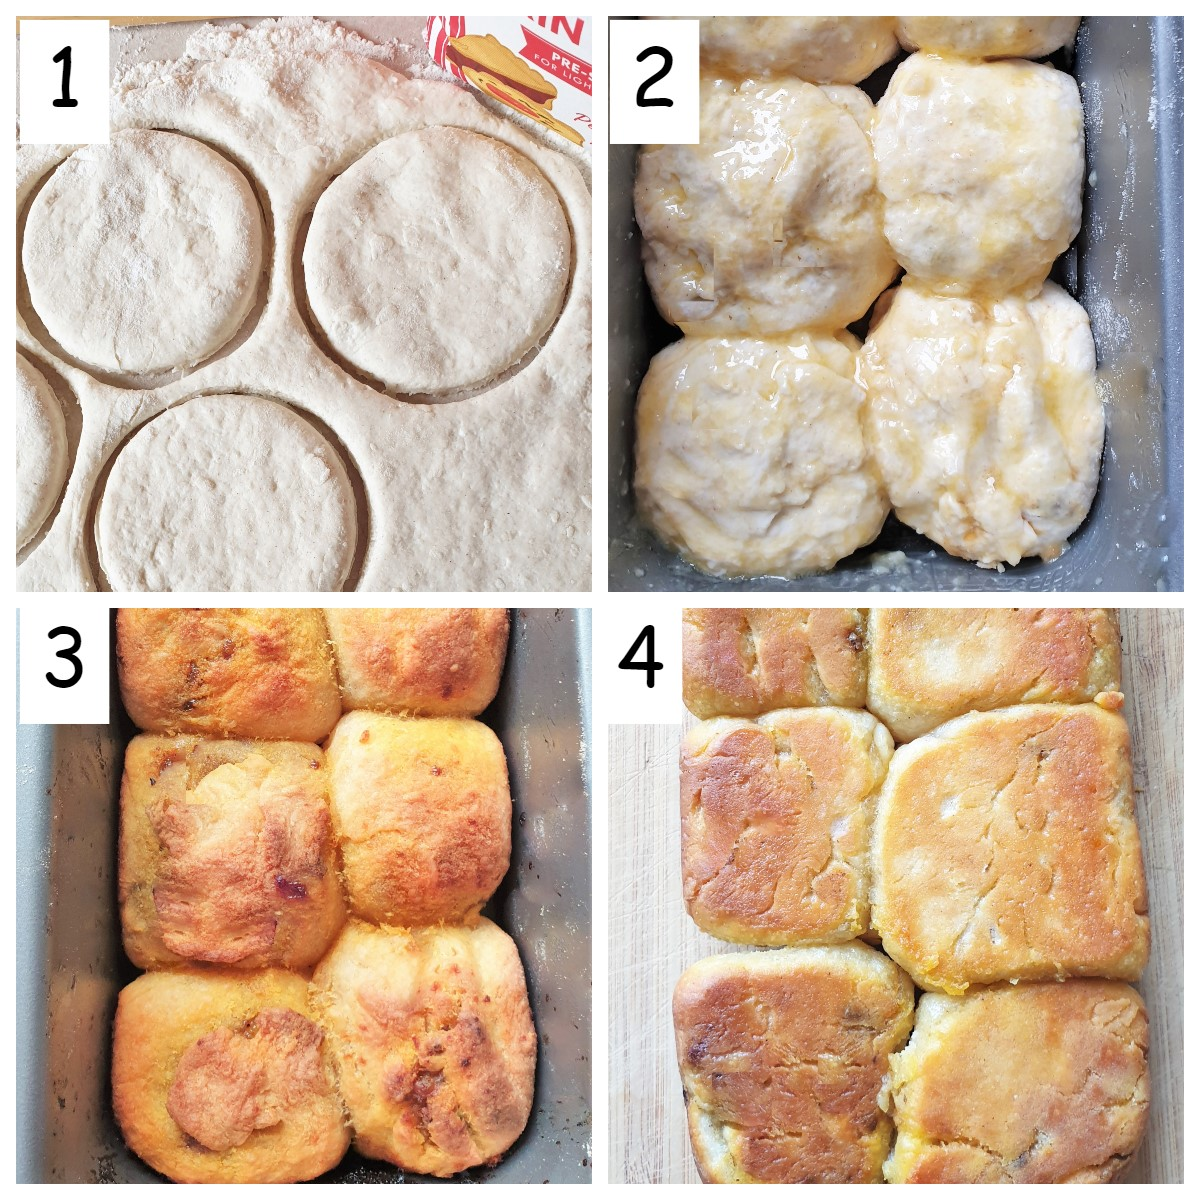 Collage of 4 images showing how to bake the dough balls.